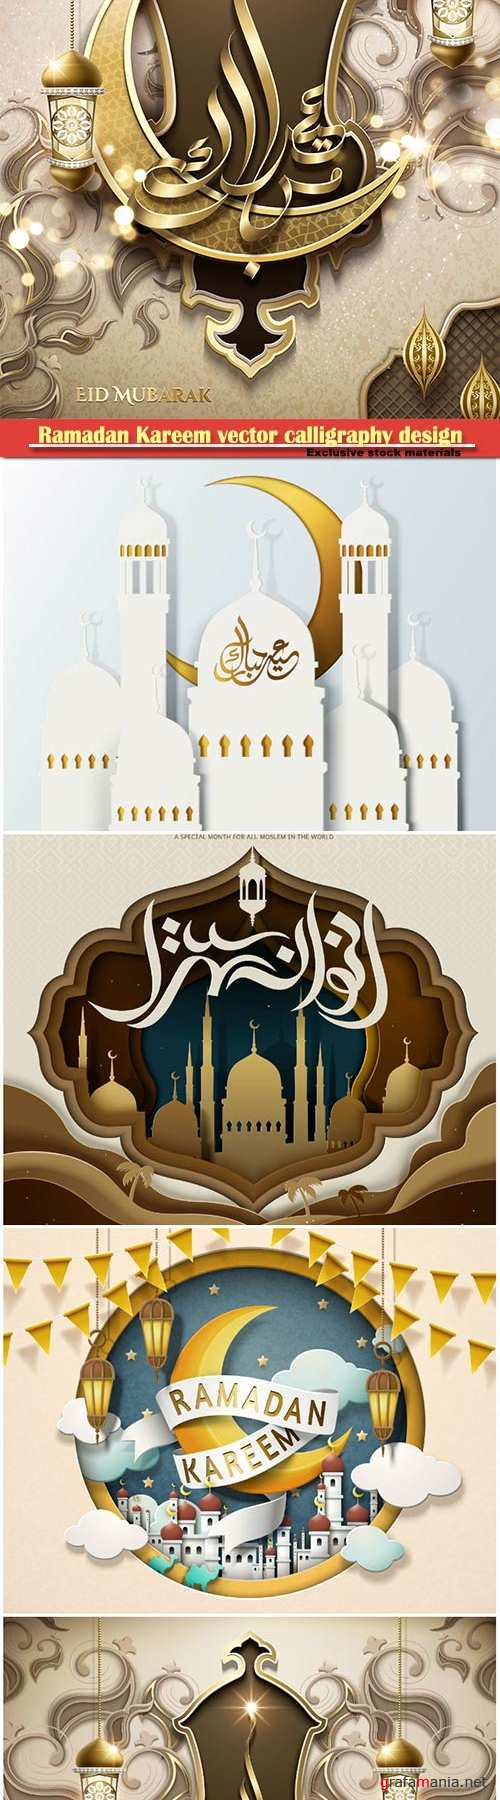 Ramadan Kareem vector calligraphy design with decorative floral pattern,mosque silhouette, crescent and glittering islamic background # 8